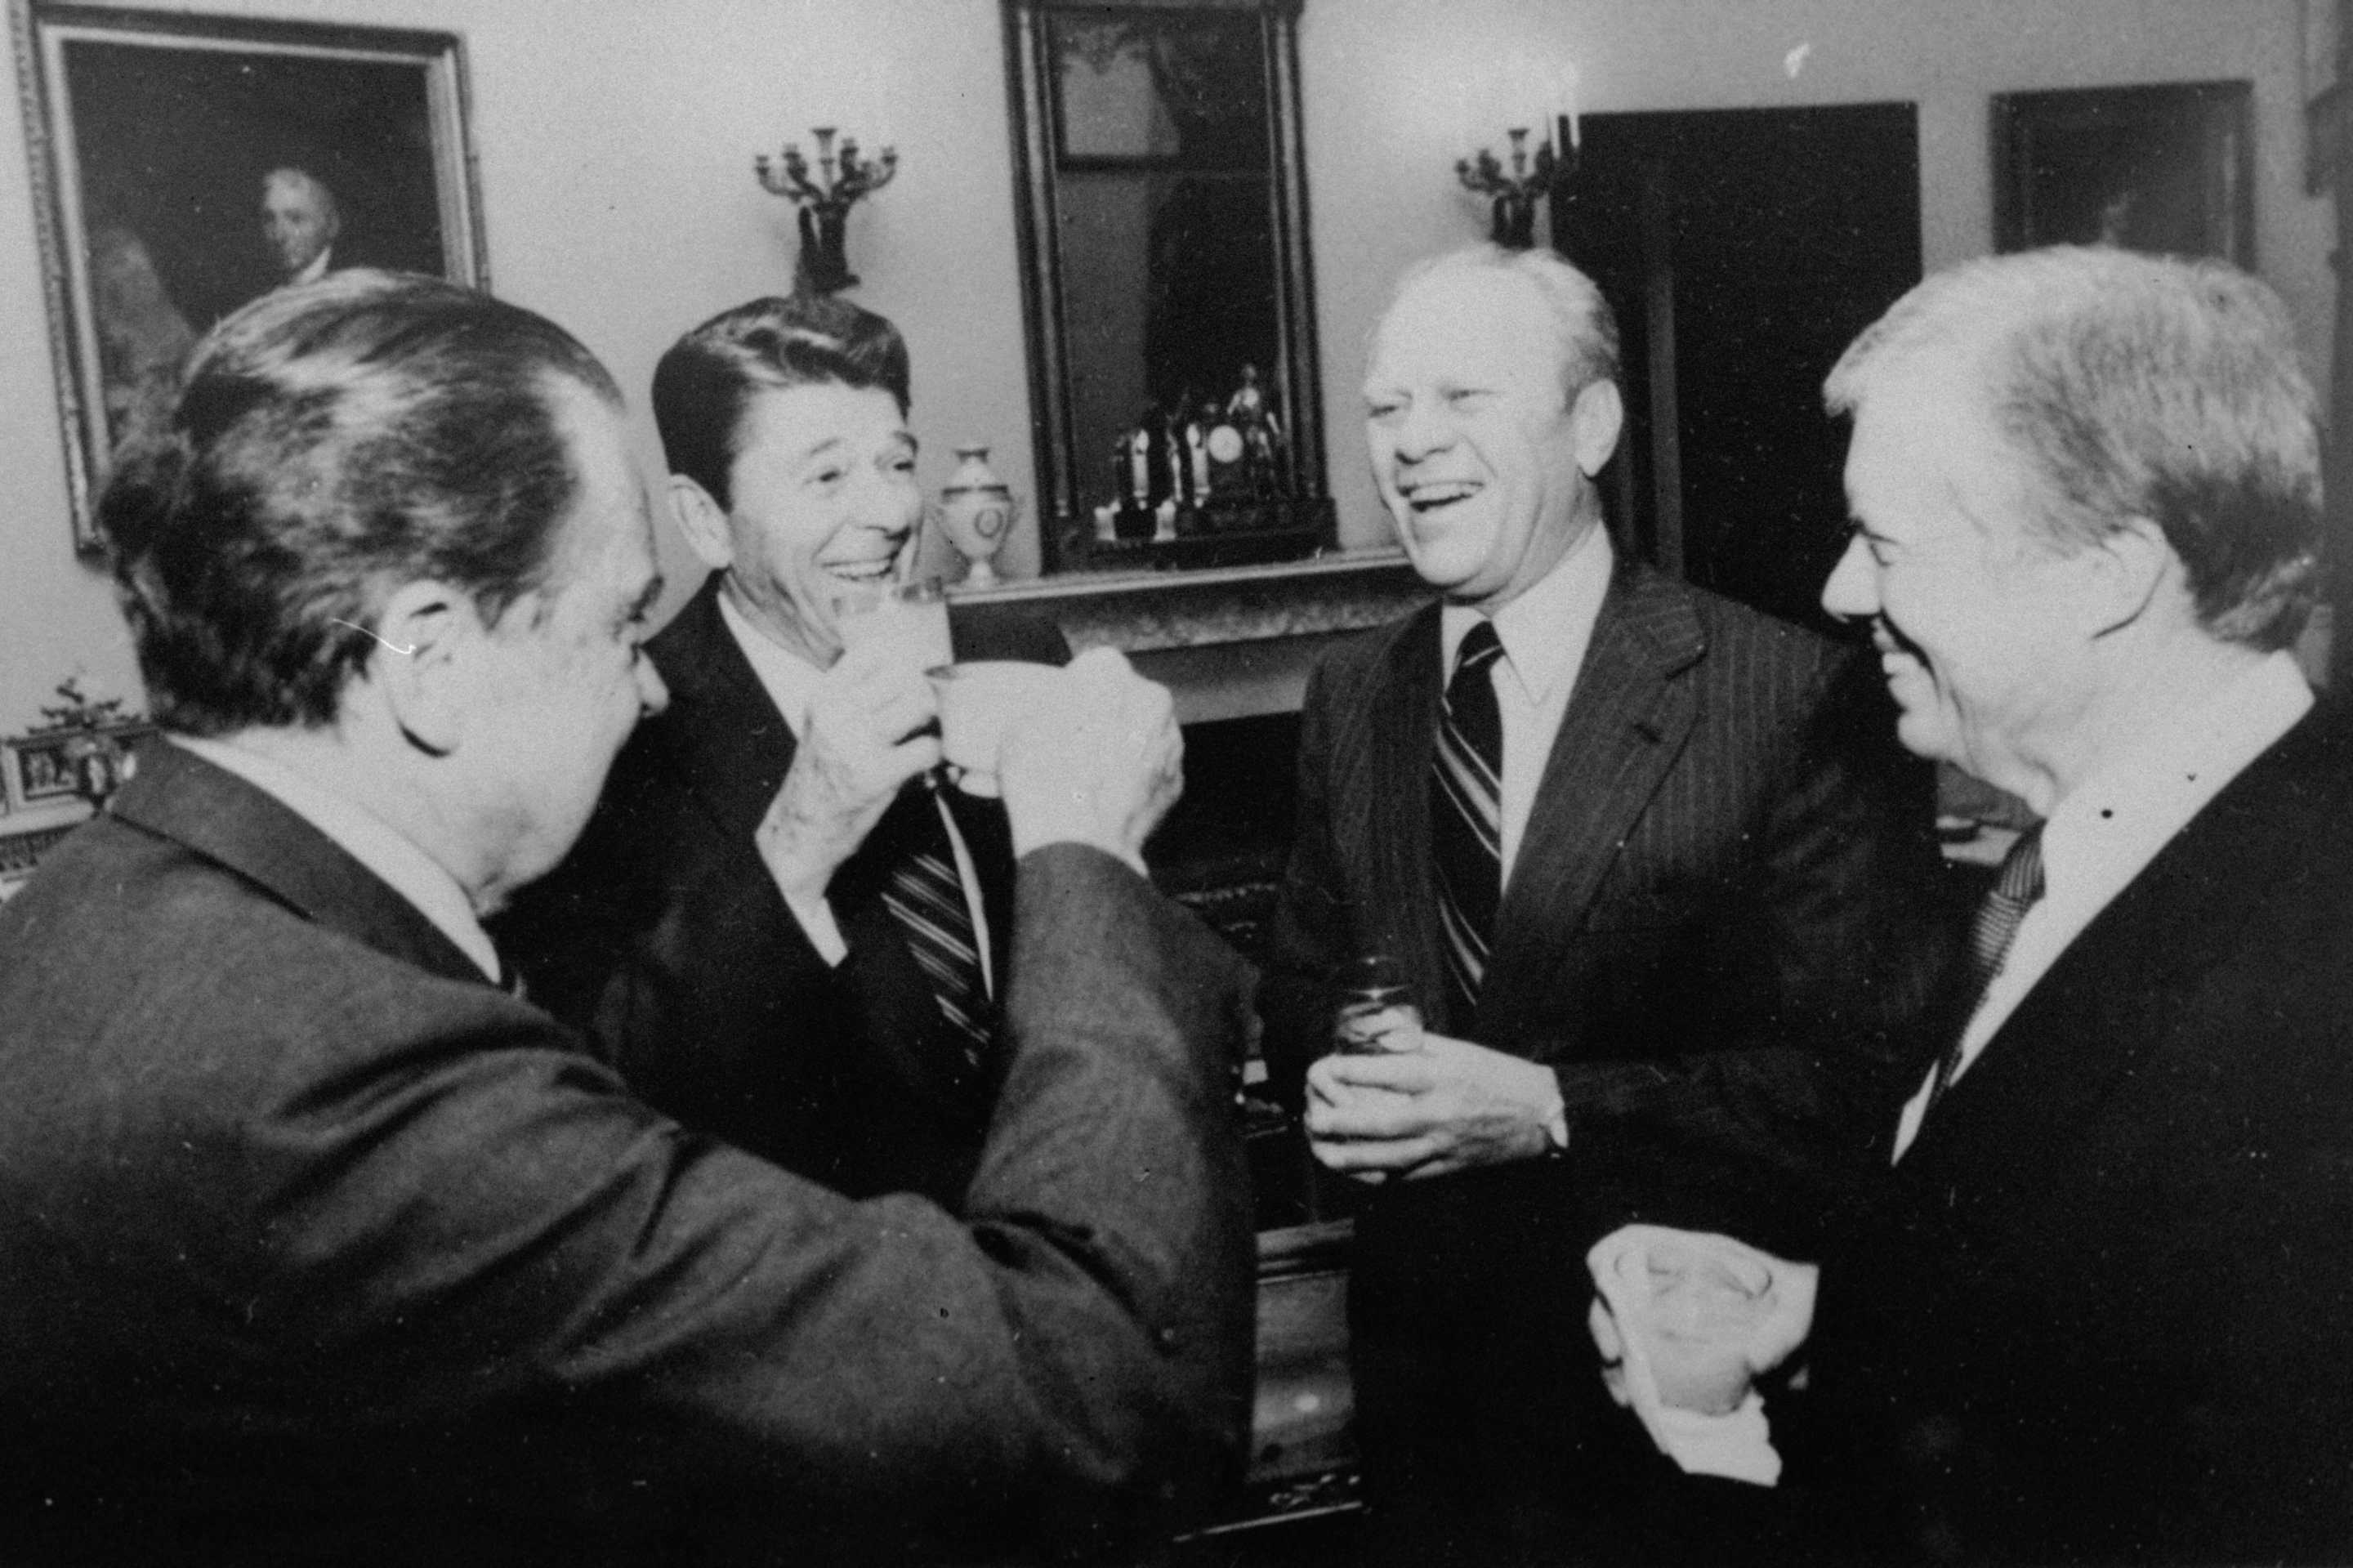 President Ronald Reagan and former Presidents Richard Nixon, Gerald Ford, and Jimmy Carter, offer a toast at the White House on Oct. 8, 1981 as the four met prior to the departure of the three former Presidents to Cairo for the funeral of President Sadat.